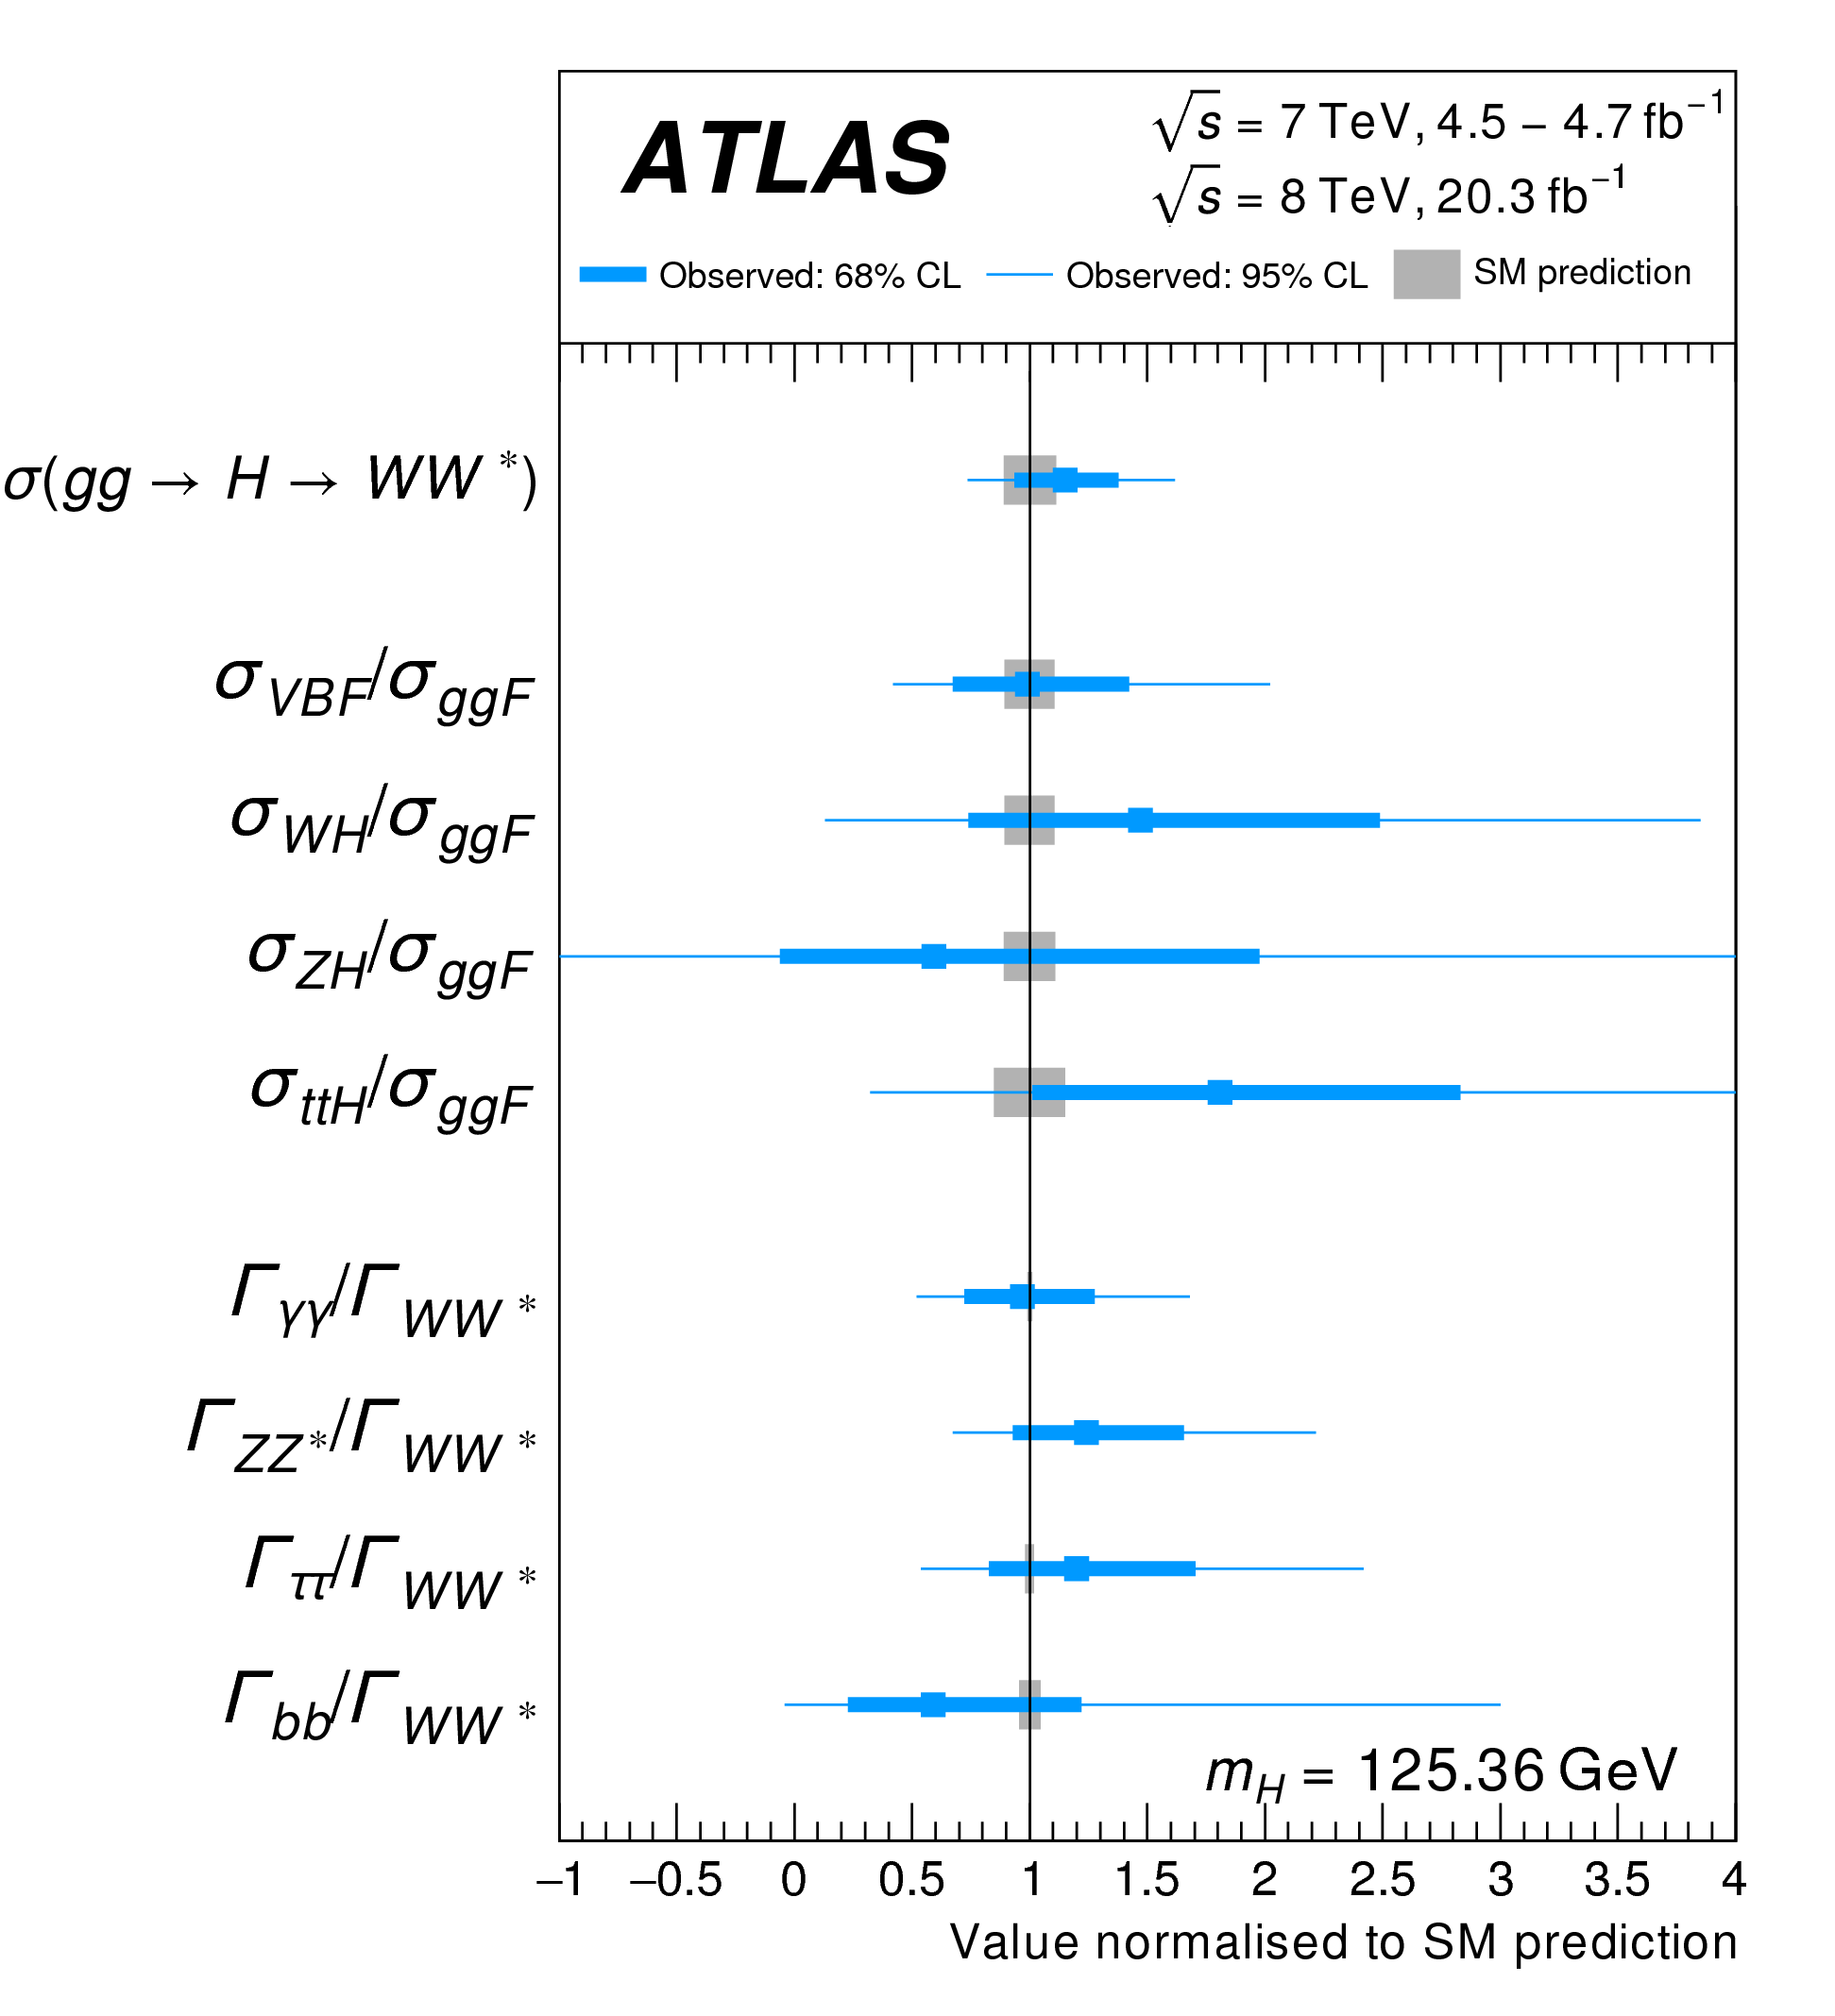 https://atlas.web.cern.ch/Atlas/GROUPS/PHYSICS/CombinedSummaryPlots/HIGGS/ATLAS_HIGGS3100_XSandBRratio_Summary/ATLAS_HIGGS3100_XSandBRratio_Summary.png